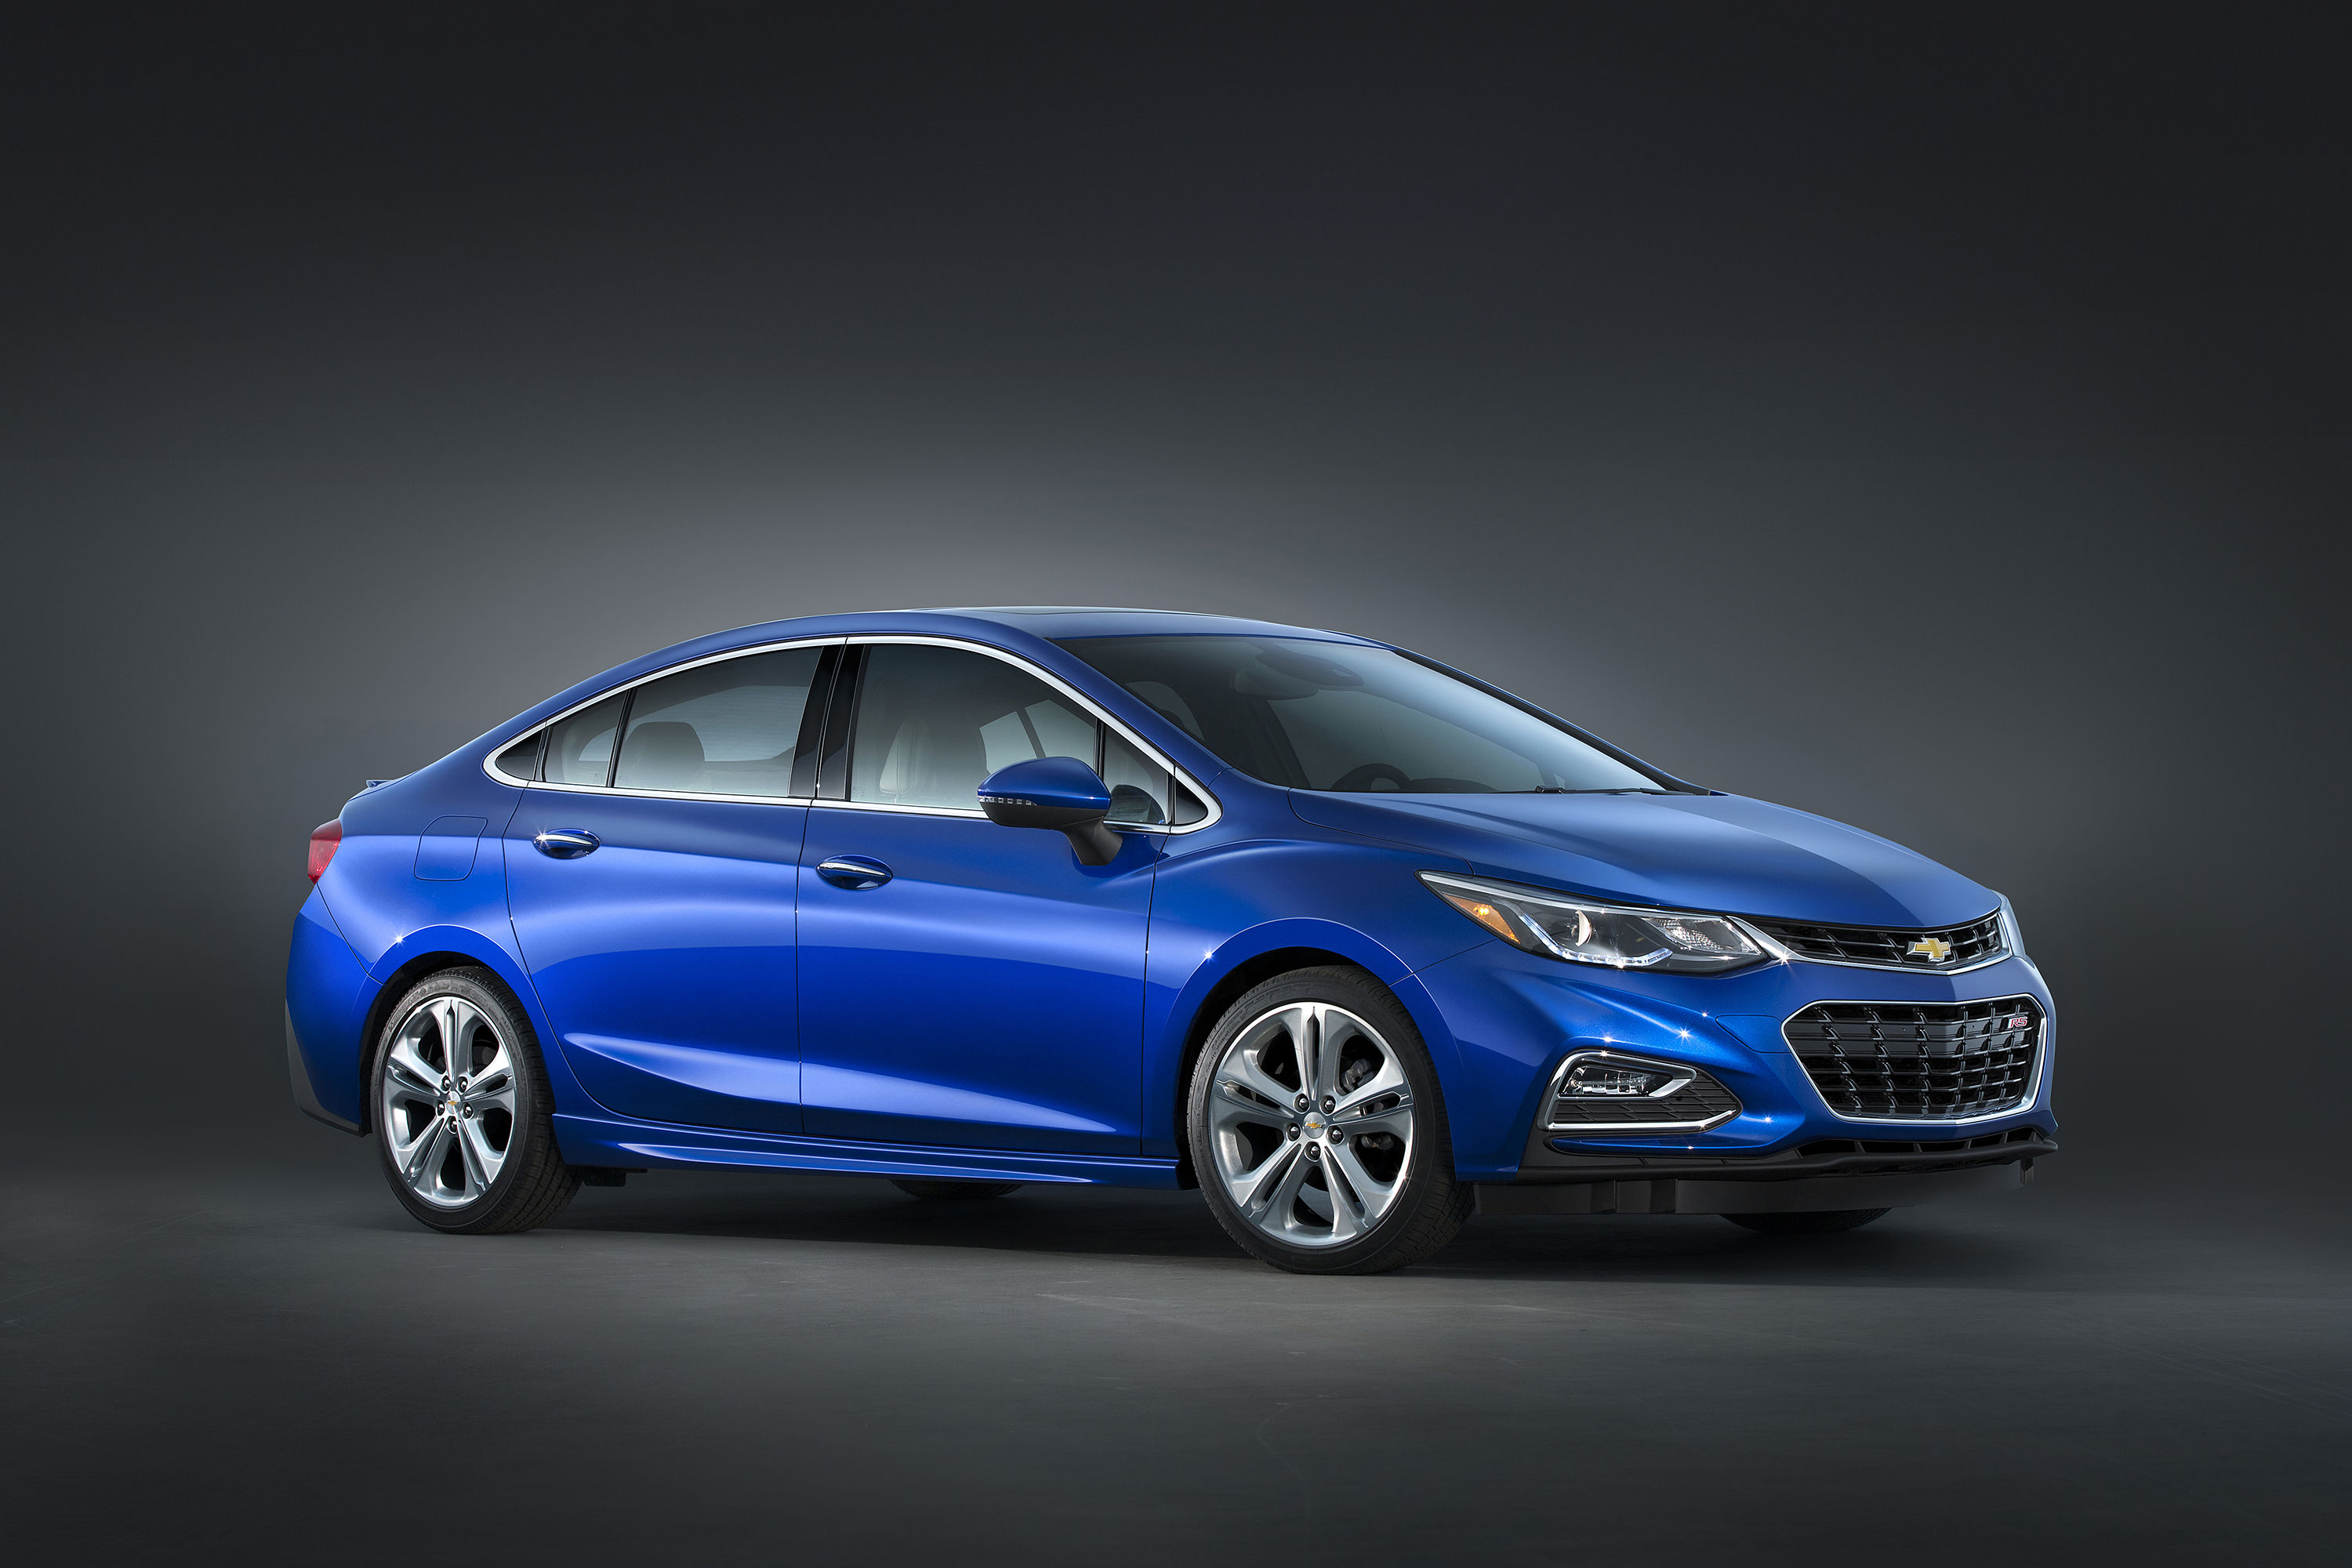 cruze models for janky seats org recalls motorsafety chevrolet